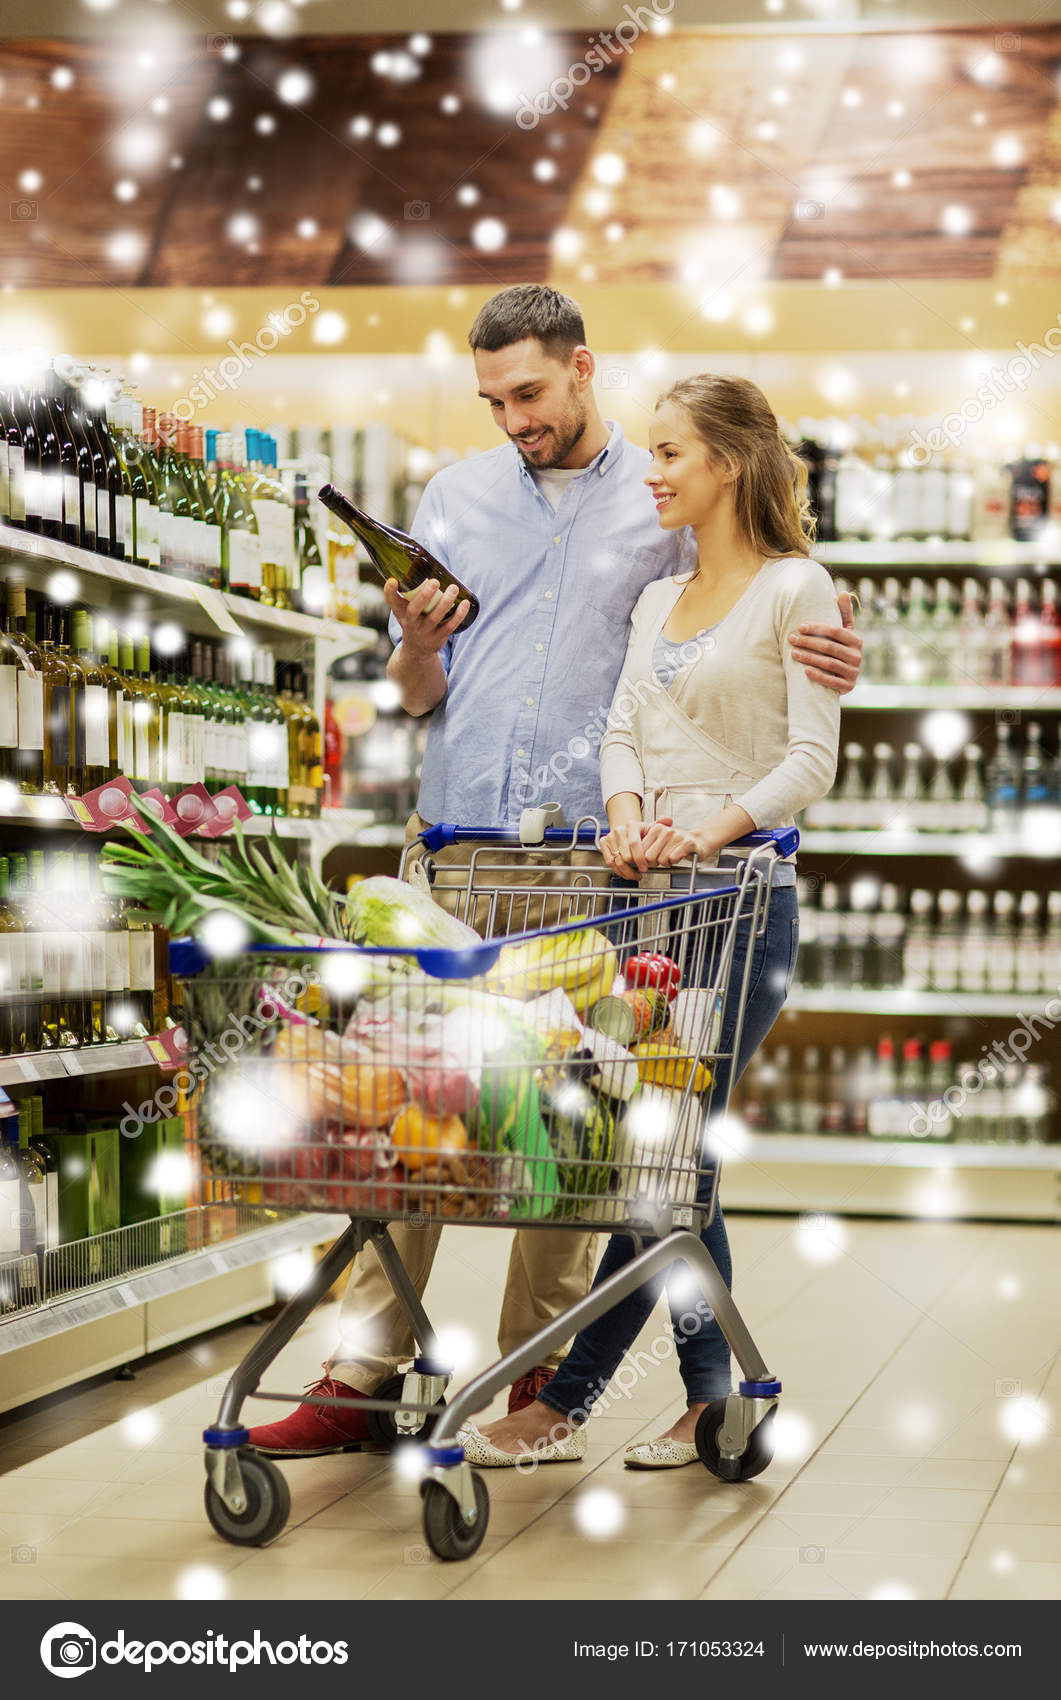 Couple With Wine And Shopping Cart At Liquor Store Stock